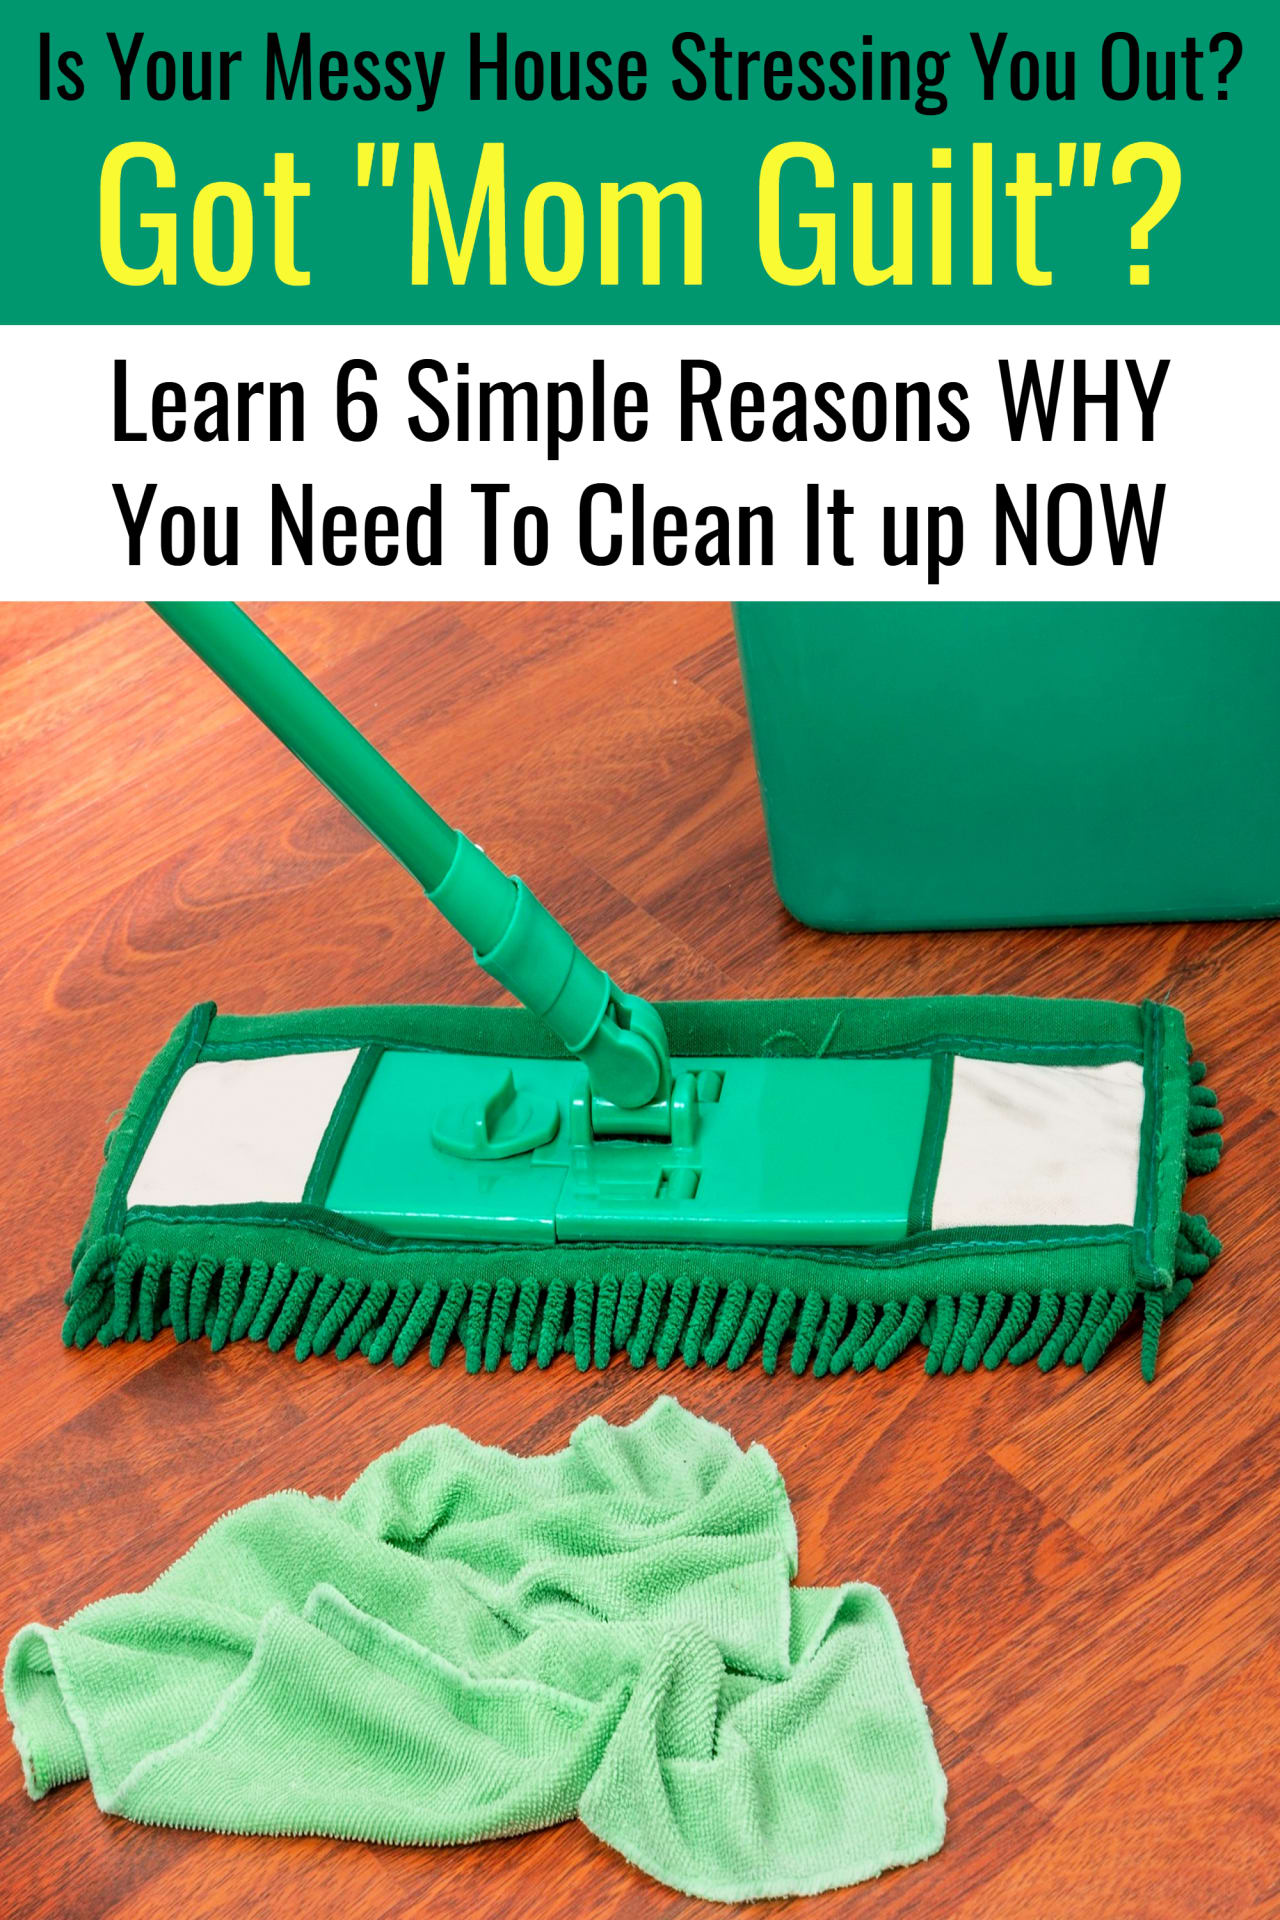 Cleaning Hacks for Moms,  Need to print and put in my household notebook checklists.  Great advice for moms who have Mom Guilt because their house is a cluttered mess!  Here's 6 reasons why you need to keep your house clean and how it will help YOU!  Get a cleaning schedule checklist or notebook or print out a worksheet, but get your house cleaned up